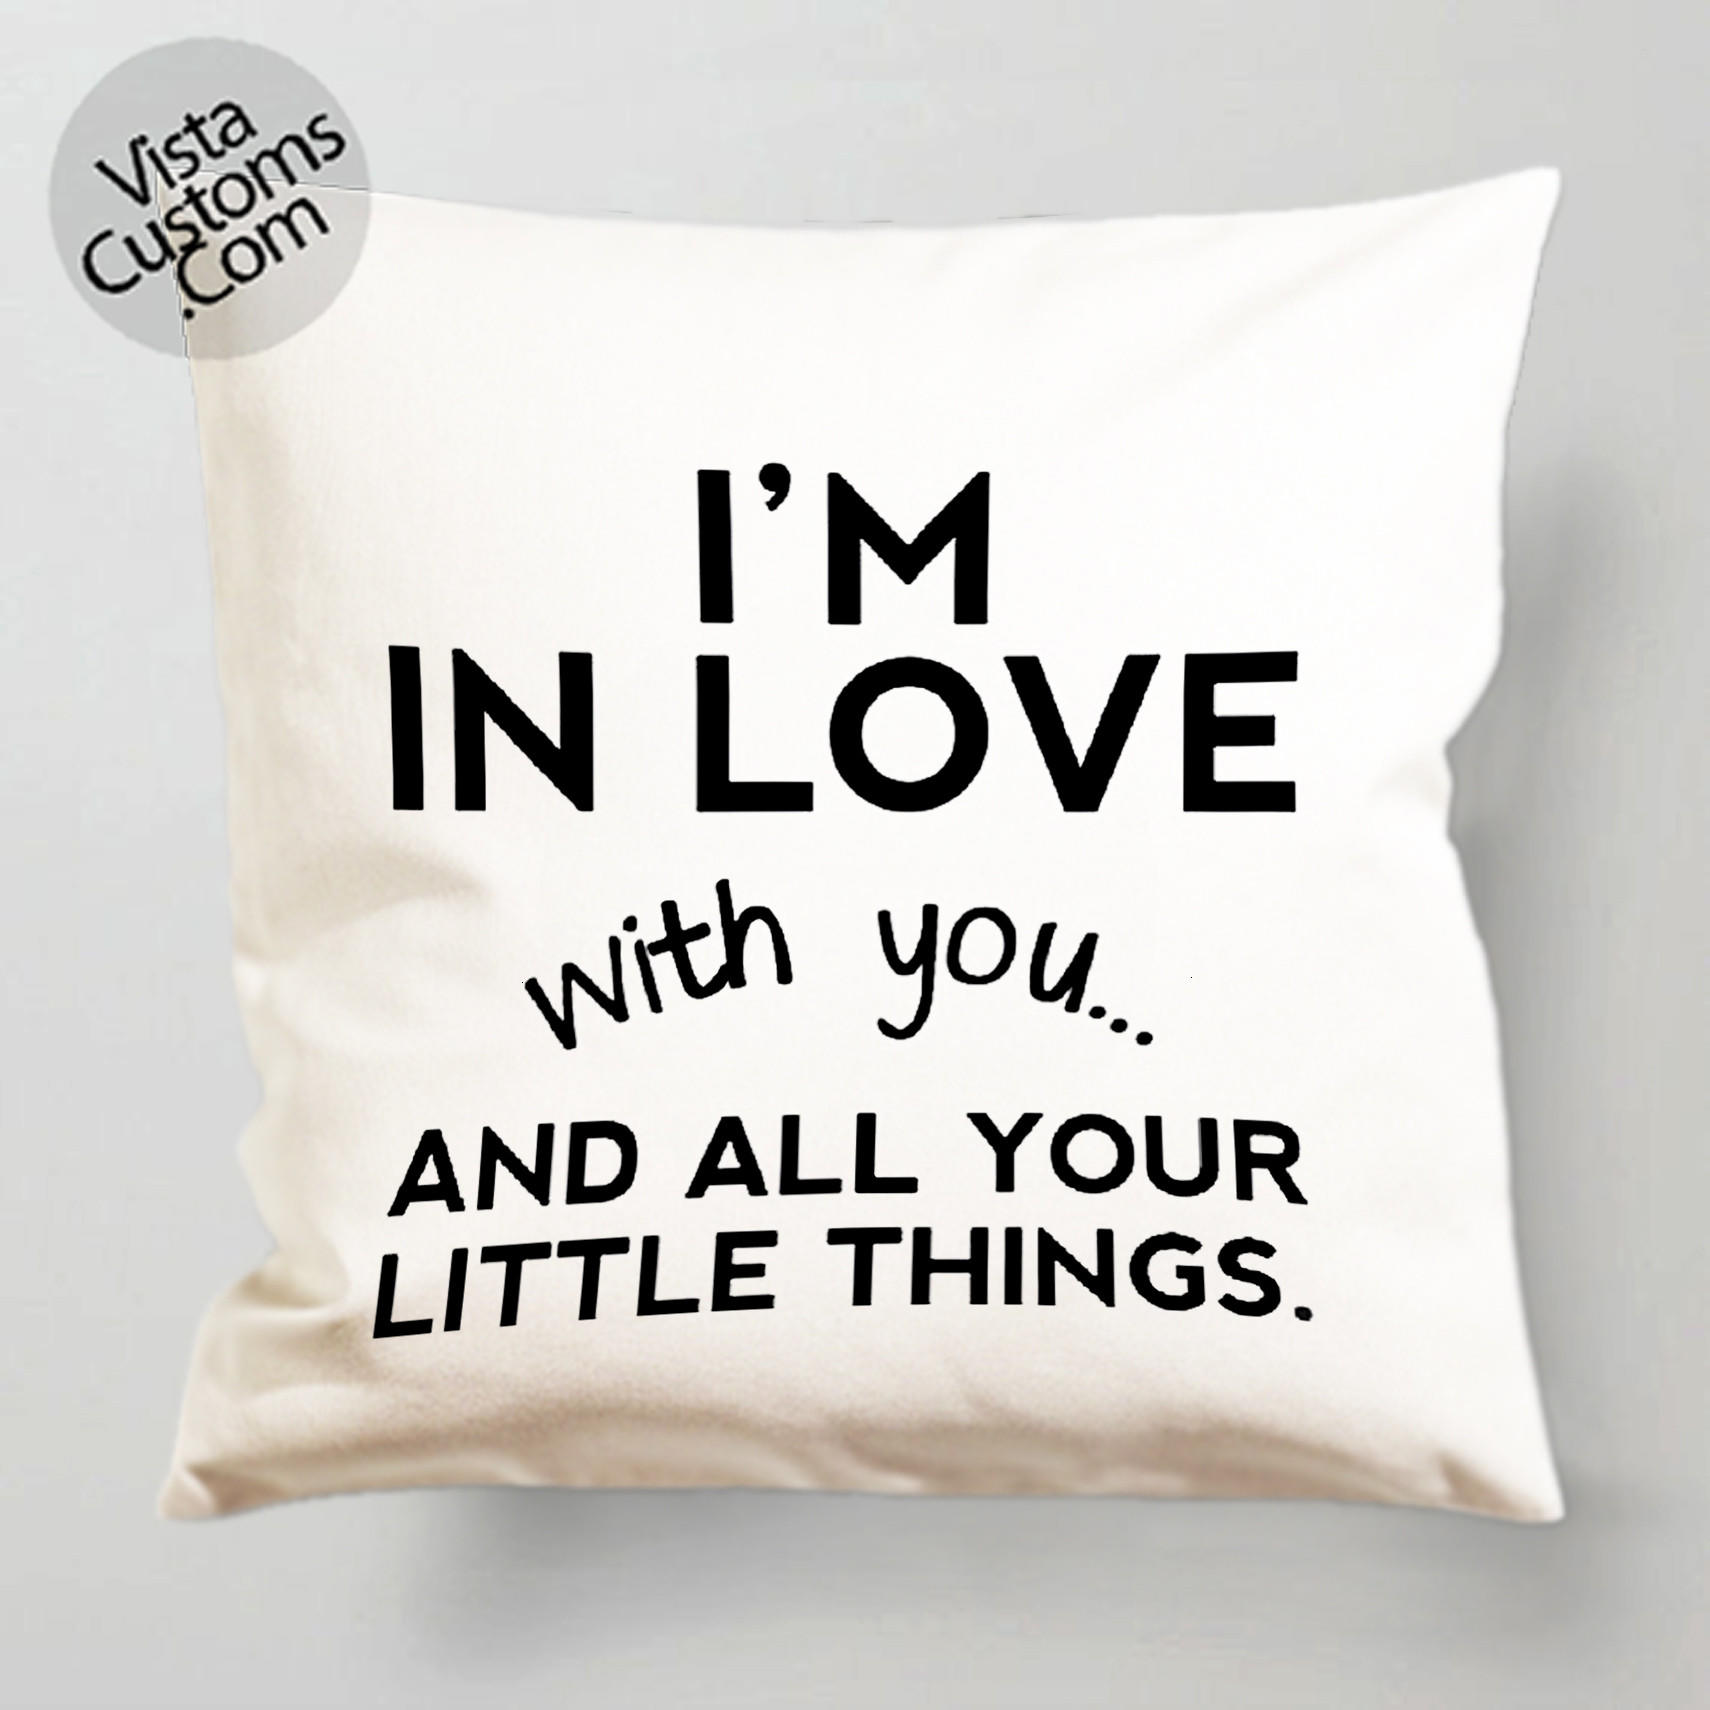 Cute love quotes one direction 5 second from vistacustoms com